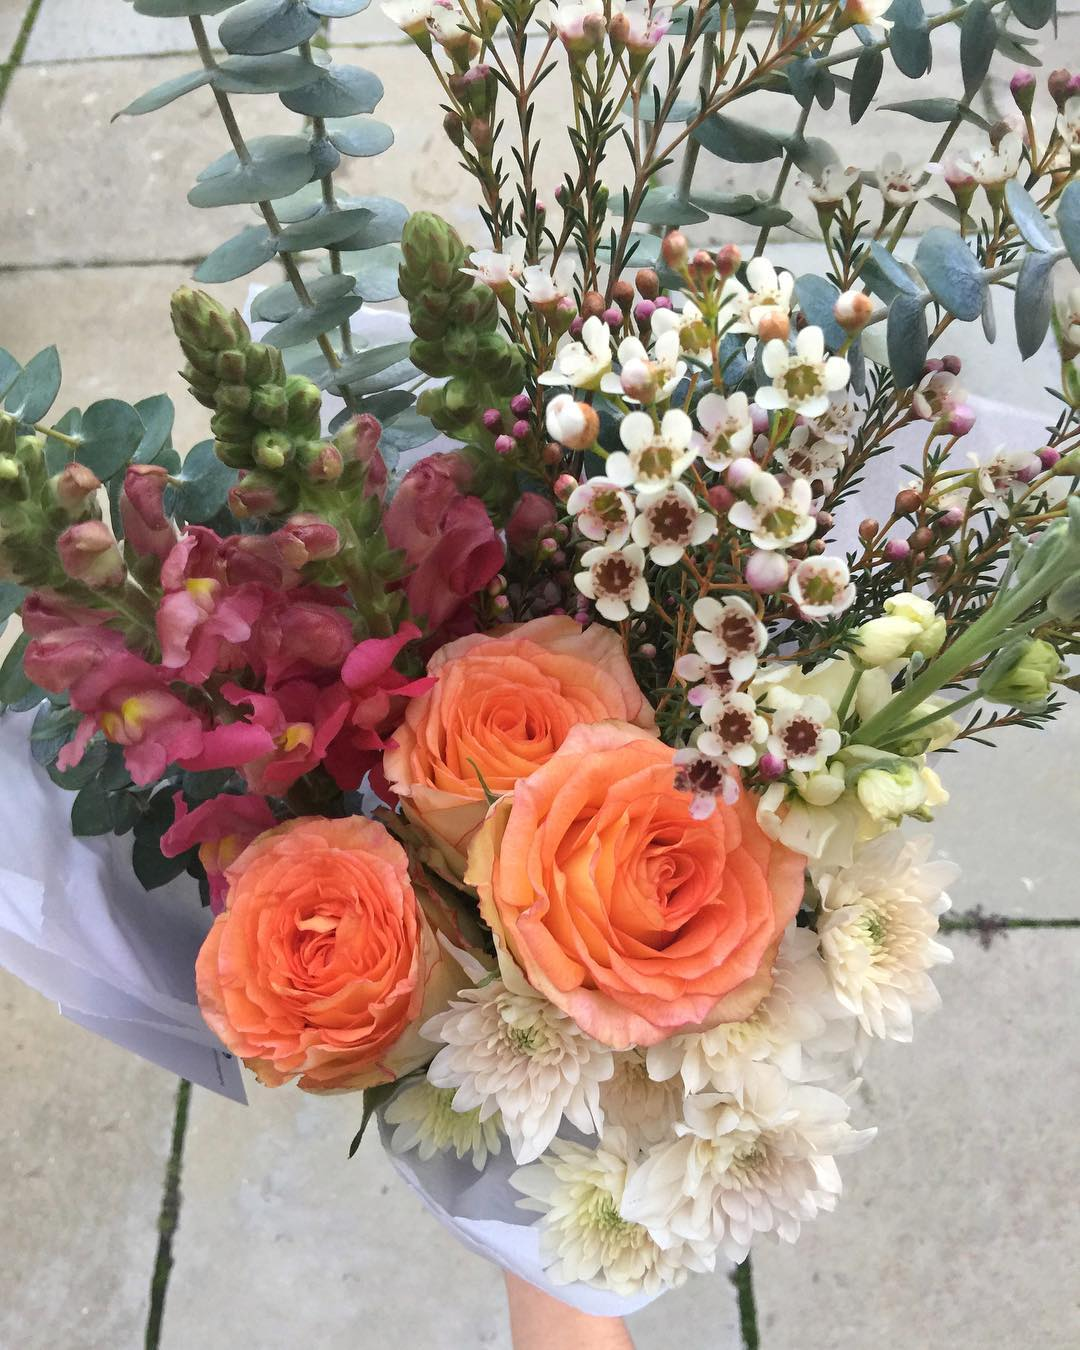 Post some Posy love tomorrow ?Preorder Tuesday's Posy online for R225 including delivery at www.petalandpost.co.za